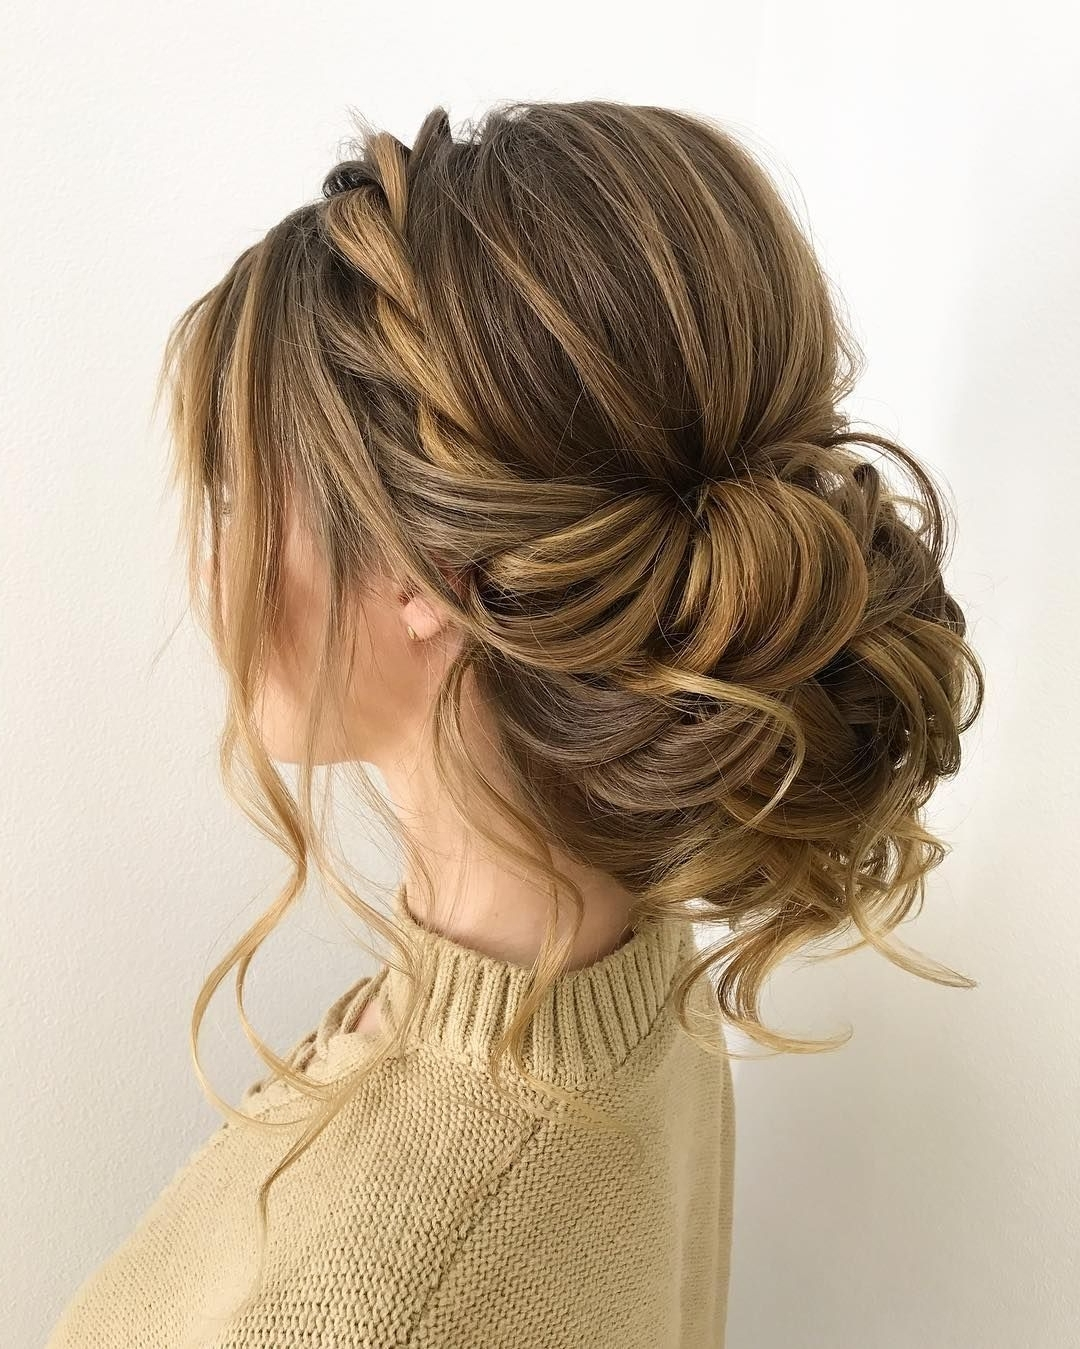 Gorgeous Wedding Updo Hairstyles That Will Wow Your Big Day For Fashionable Wedding Updos Hairstyles For Medium Length Hair (View 9 of 15)